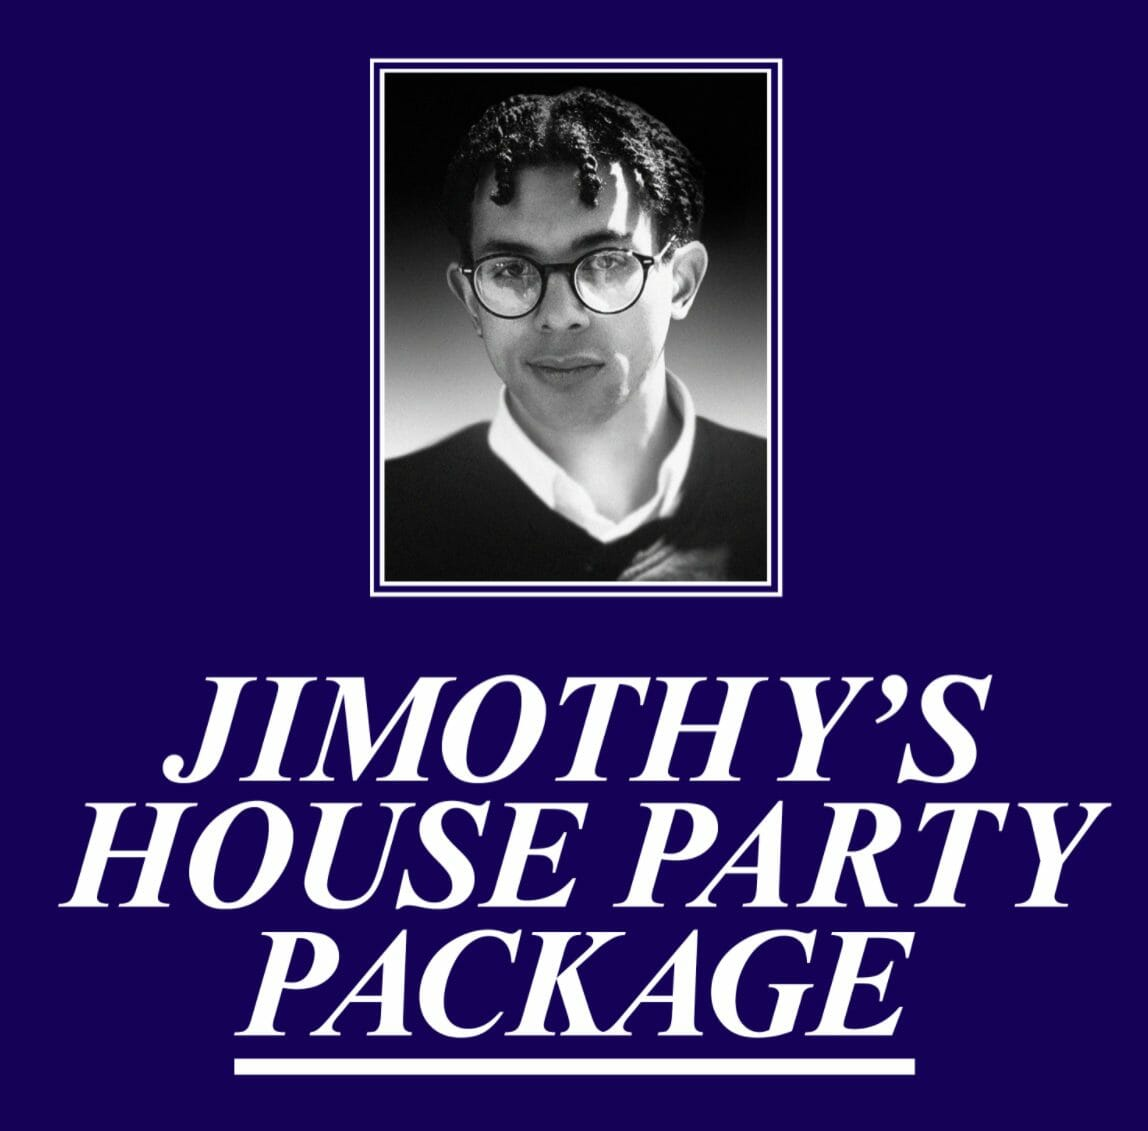 Jimothy's House Party Package 1